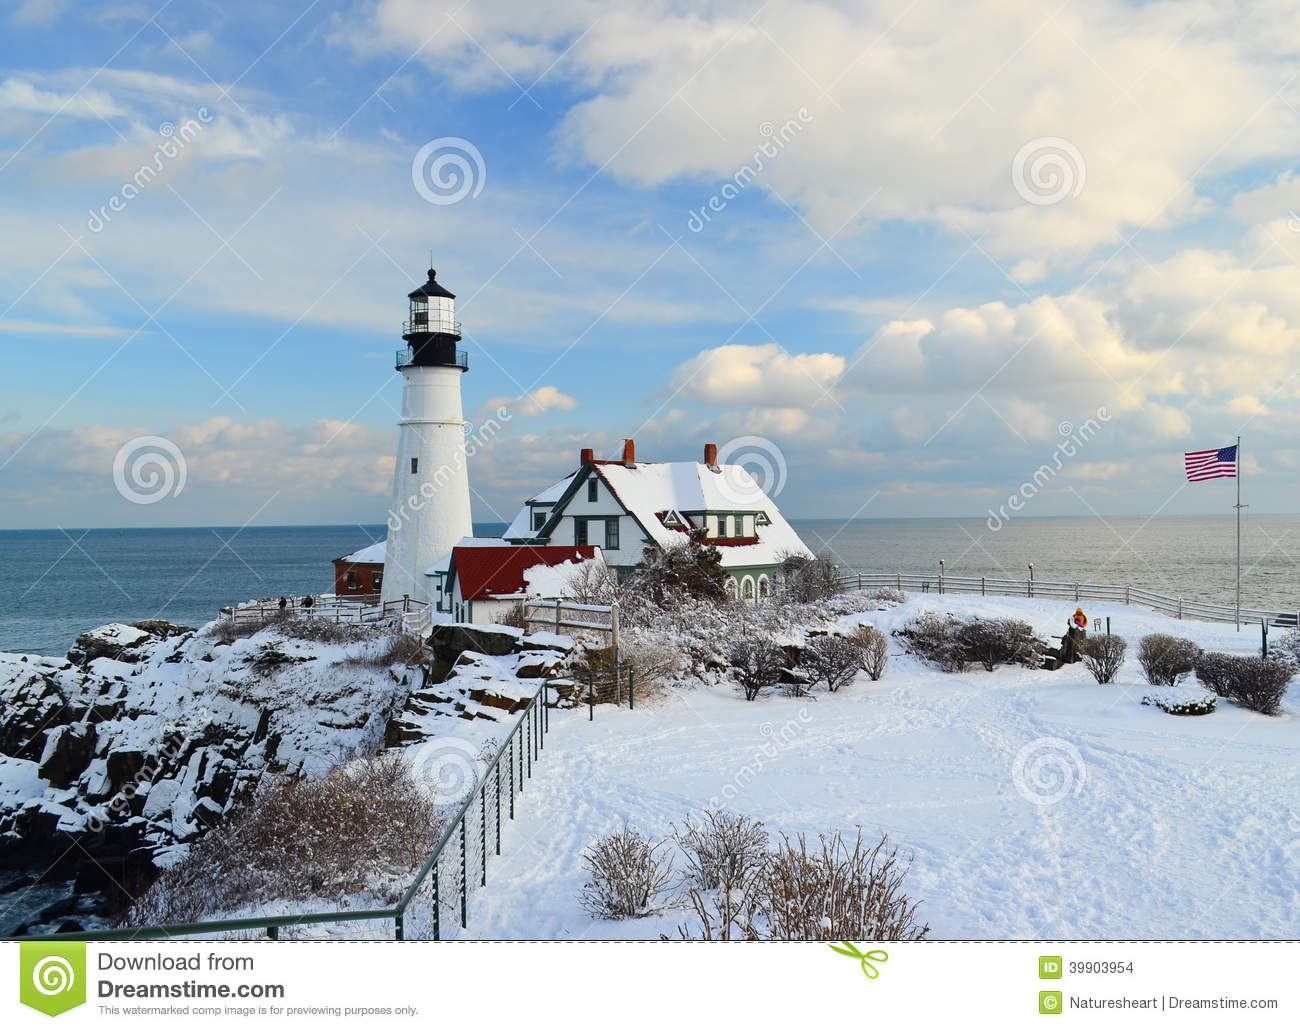 Maine Lighthouse In Winter Stock Photo - Image: 39903954